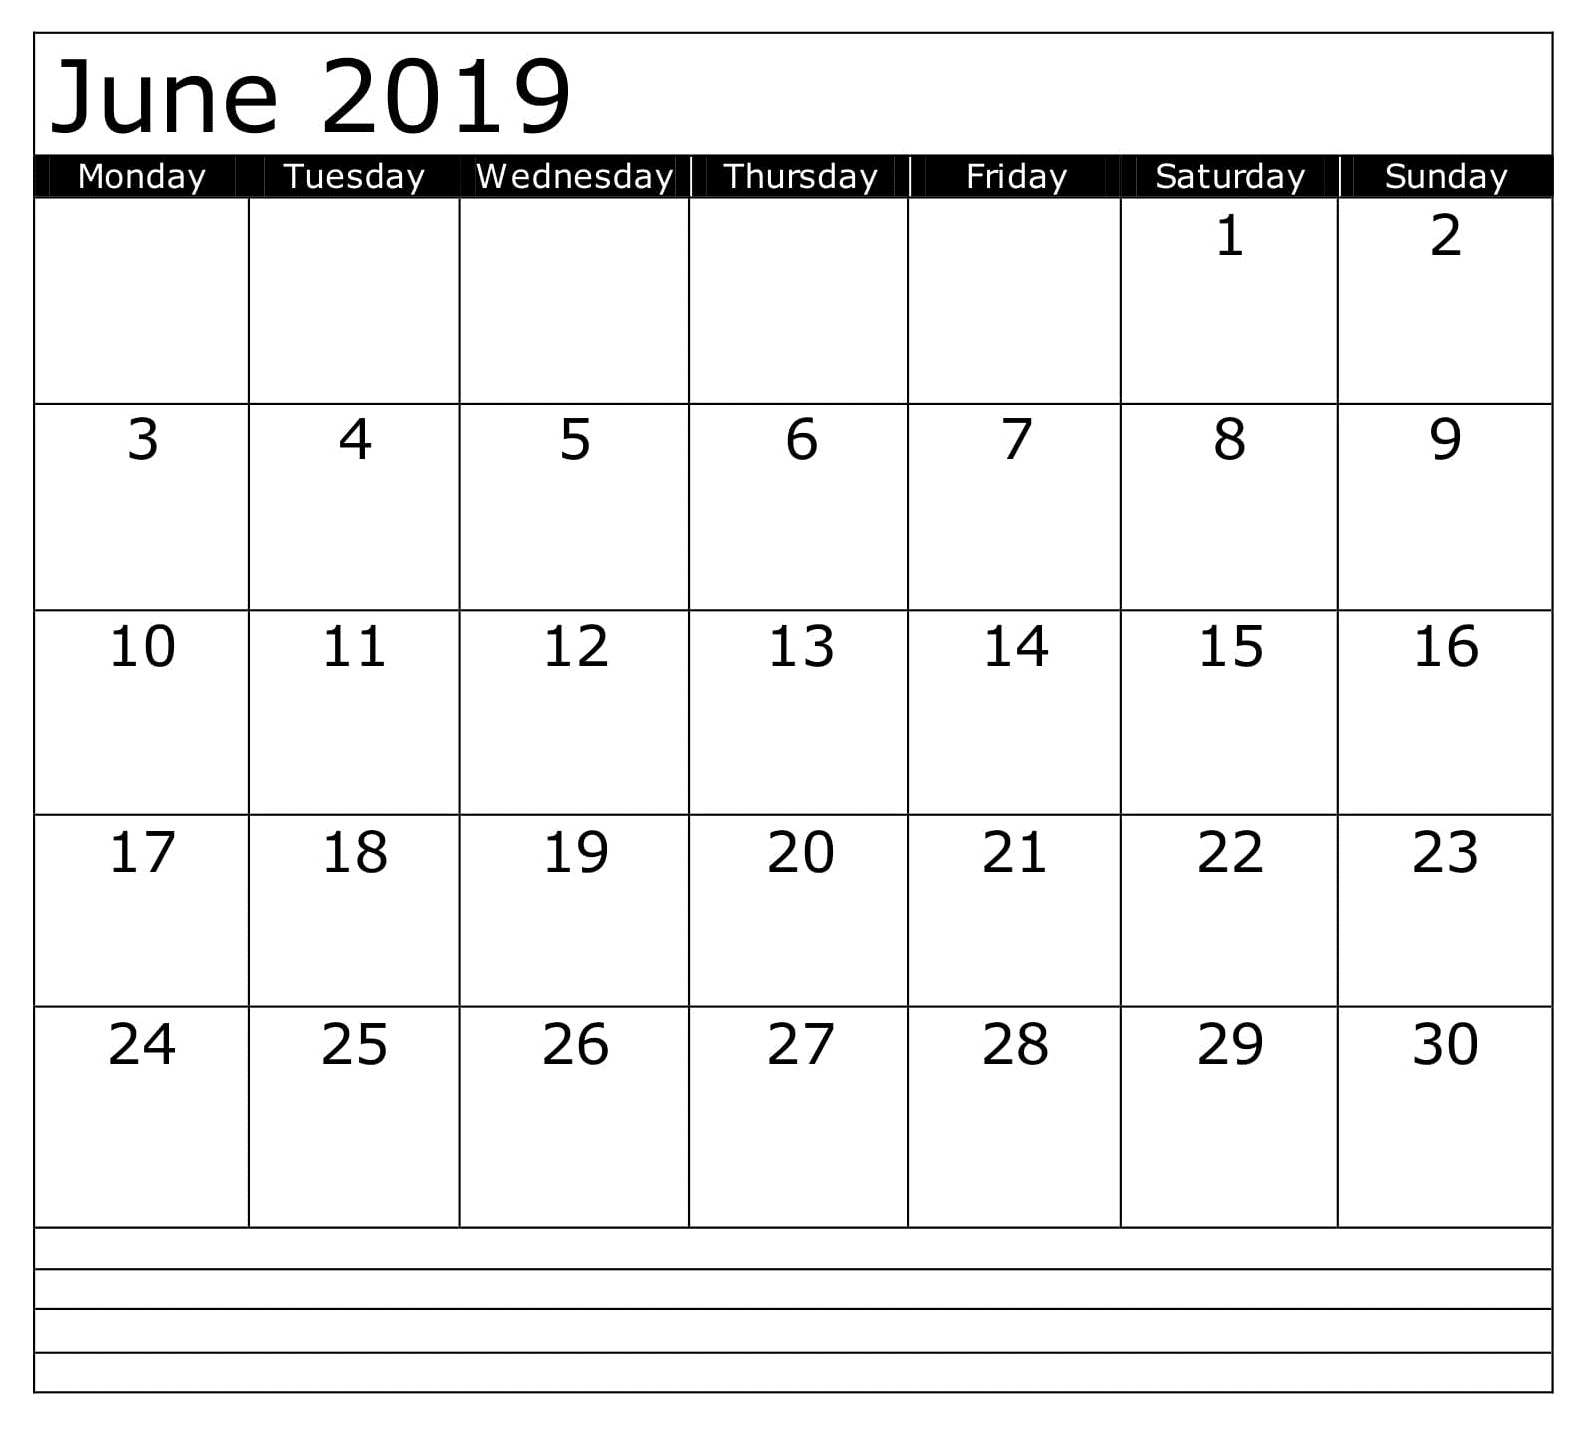 Calendar June 2019 Printable Template